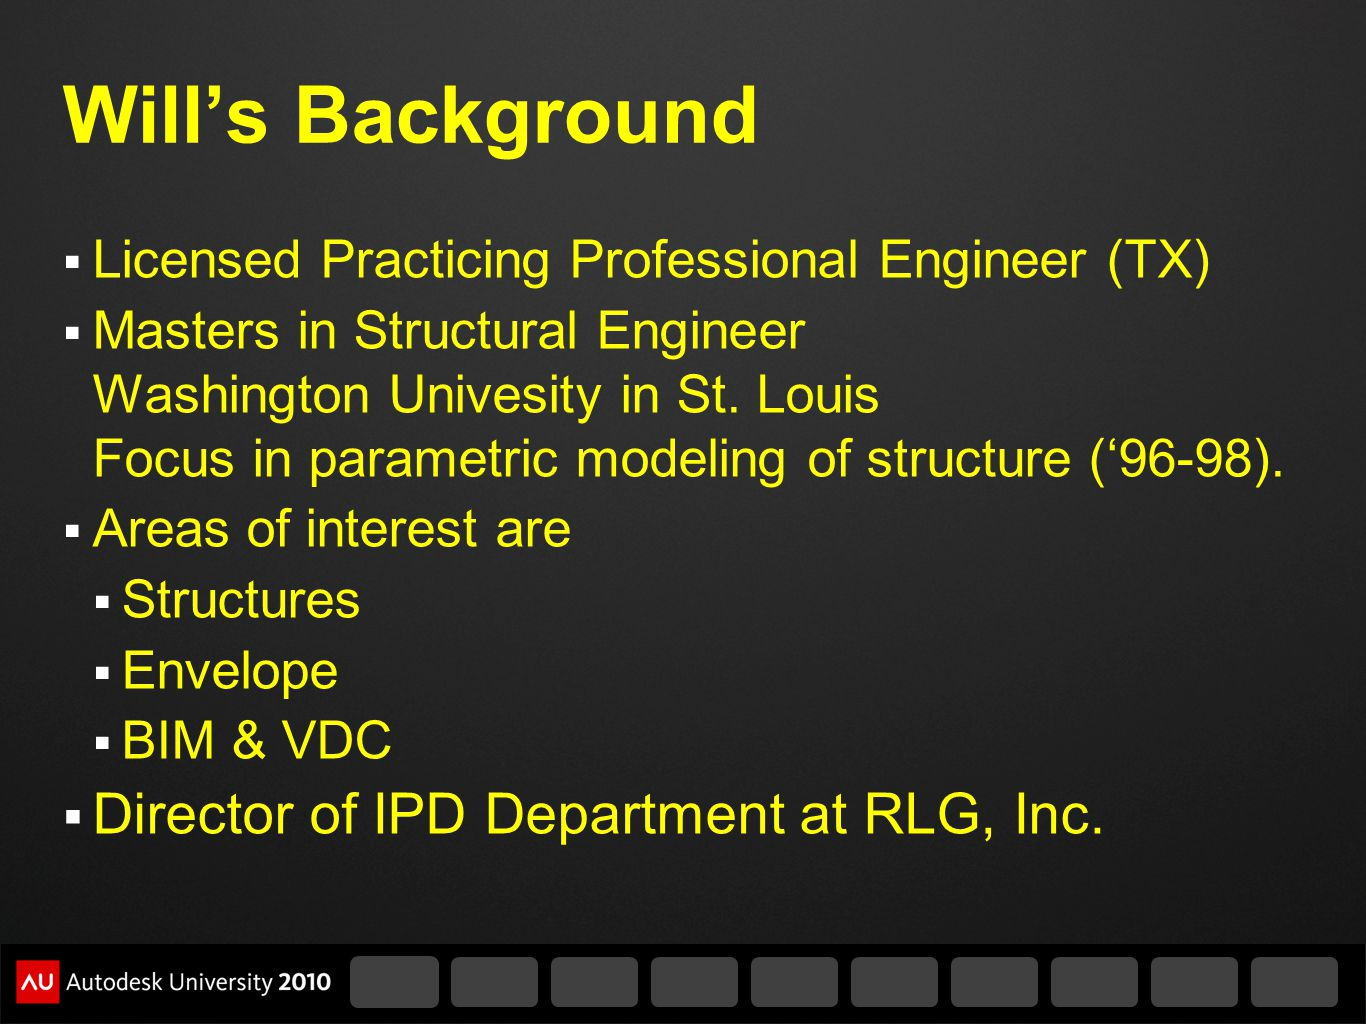 Will's Background Director of IPD Department at RLG, Inc.